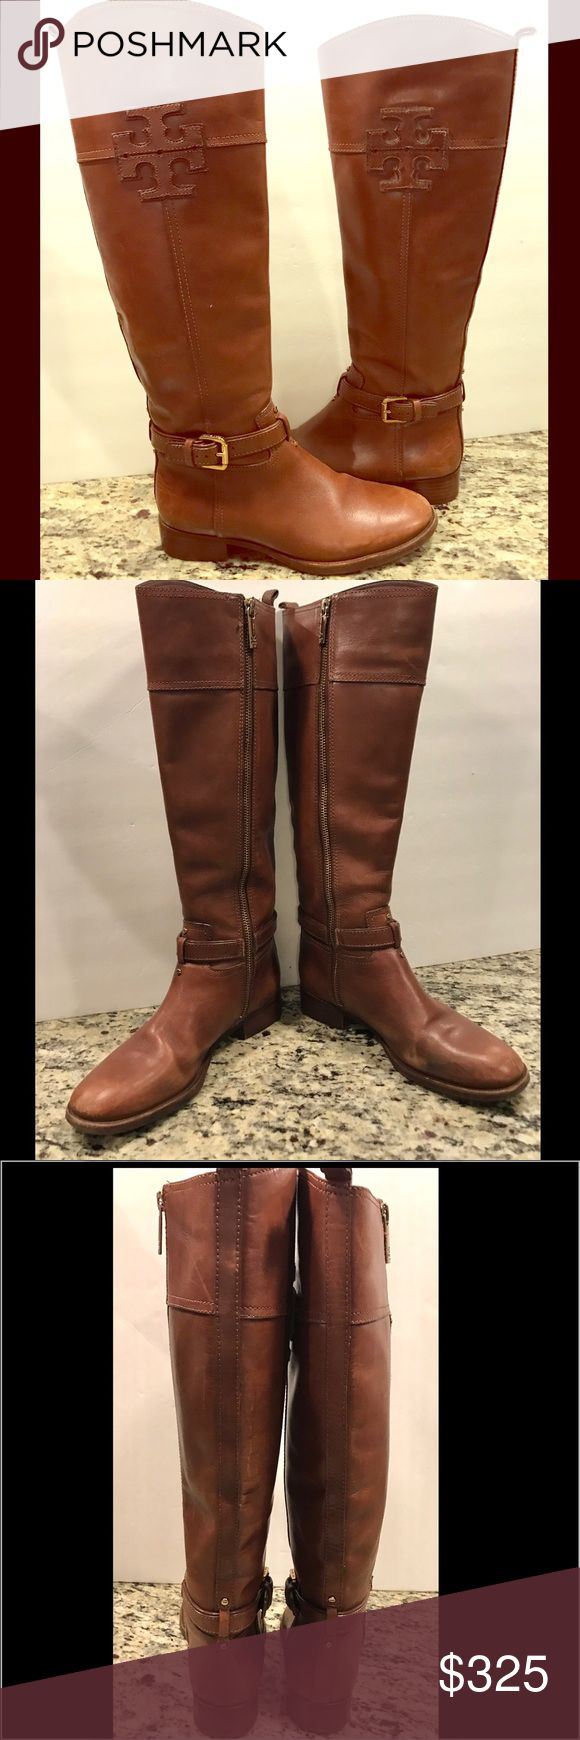 "Tory Burch Lizzie brown riding boots Absolutely stunning Tory Burch Lizzie brown riding boots!   Gorgeous leather with embossed logos at top side.  Side gold zipper with TB zipper pull.  Buckle with TB around ankle.        1 1/4"" heel. 16.5"" tall, 12"" calf circumference.  **These do show some signs of wear!  Please refer to last picture for close-ups.  Inner lining in perfect condition, no stains, rips or tears.  Some scuffing, mostly at toe area and inner portion of left shoe.  So much life…"